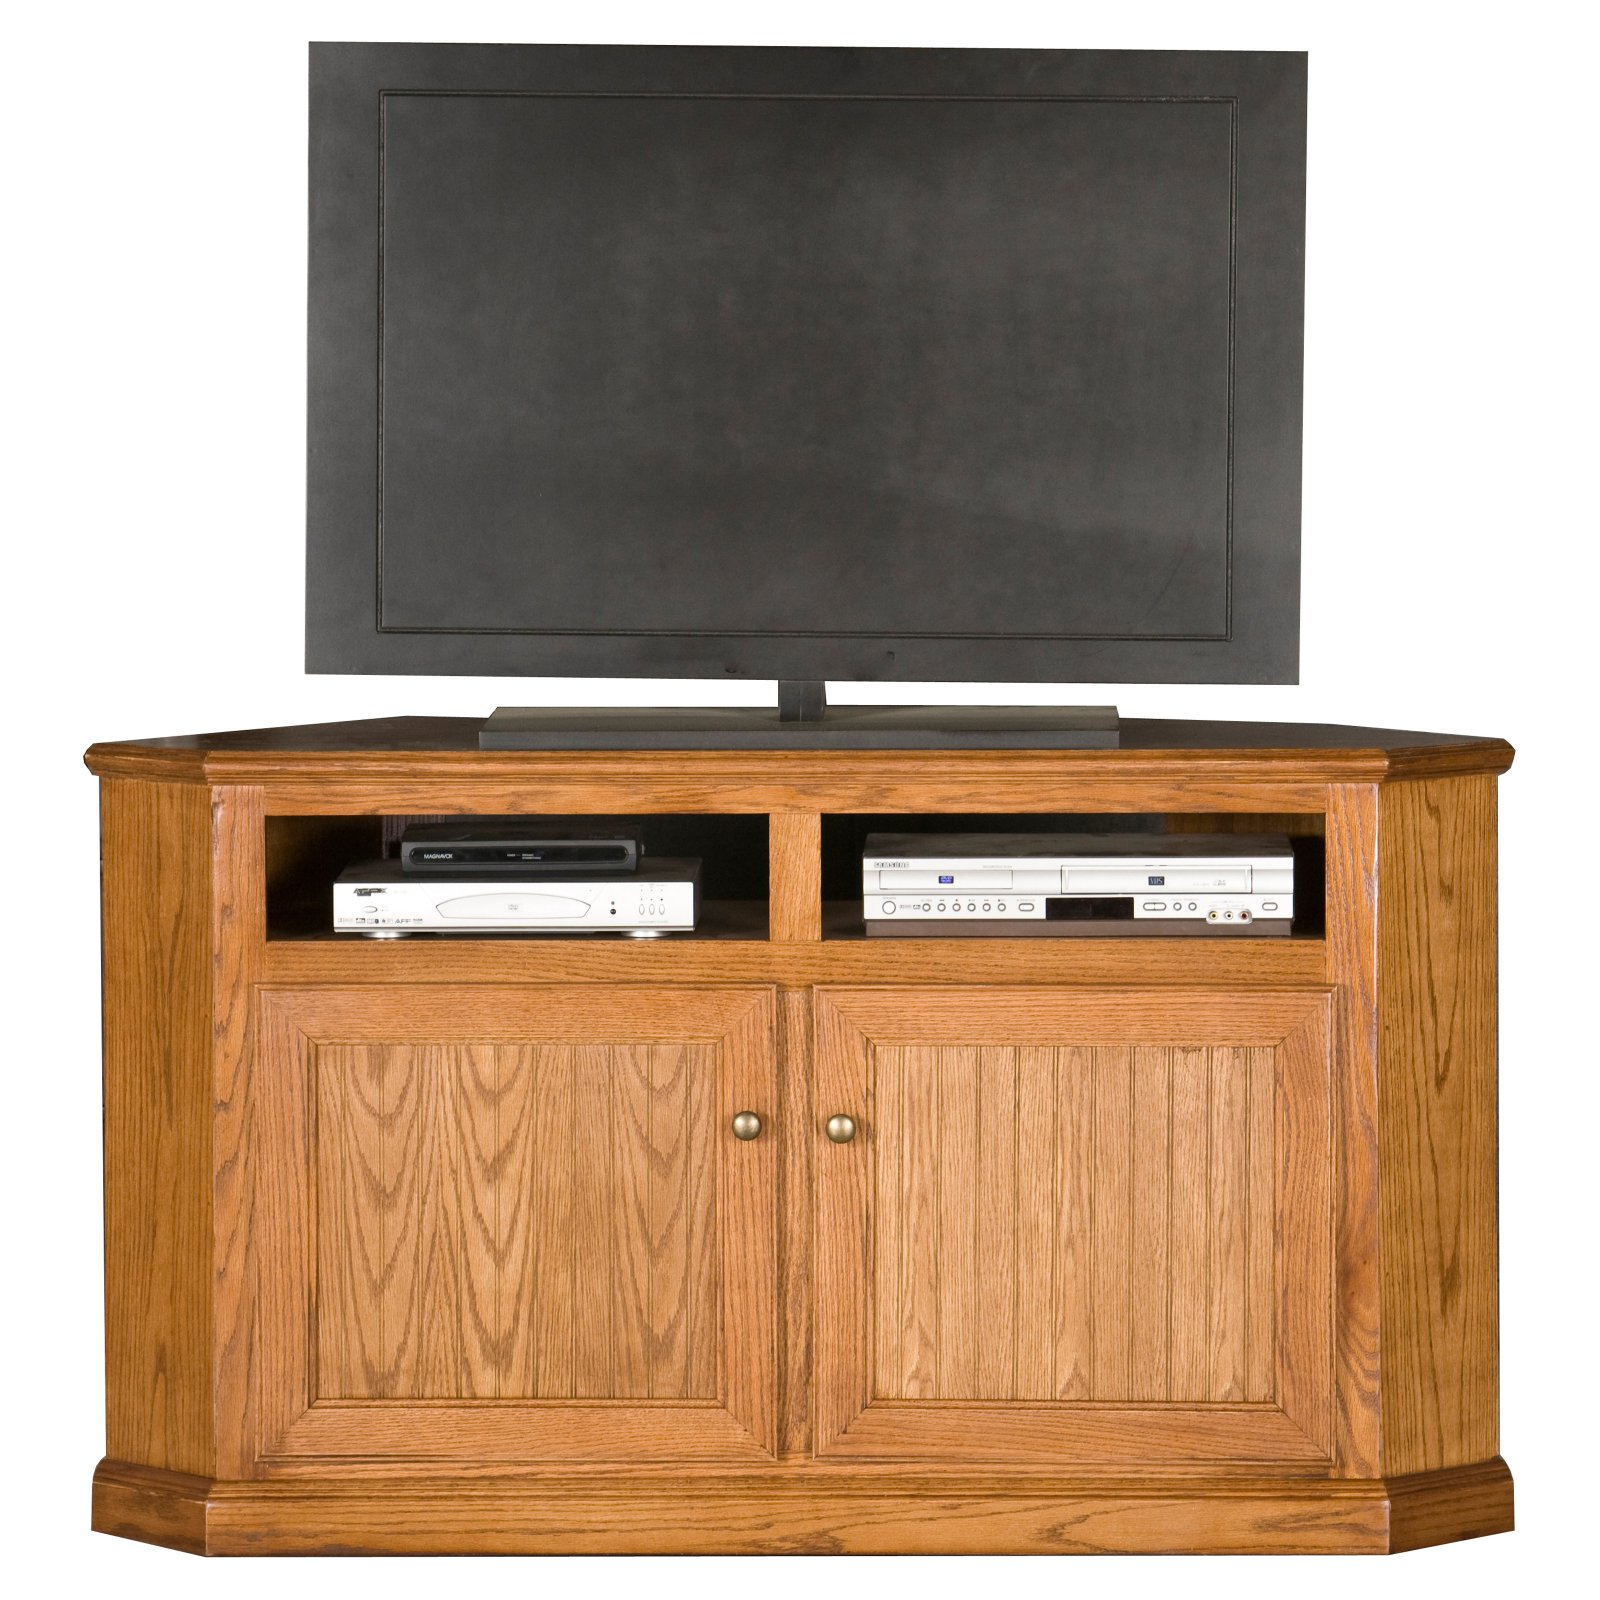 Eagle Furniture Heritage Customizable 56 in. Corner Entertainment TV Stand